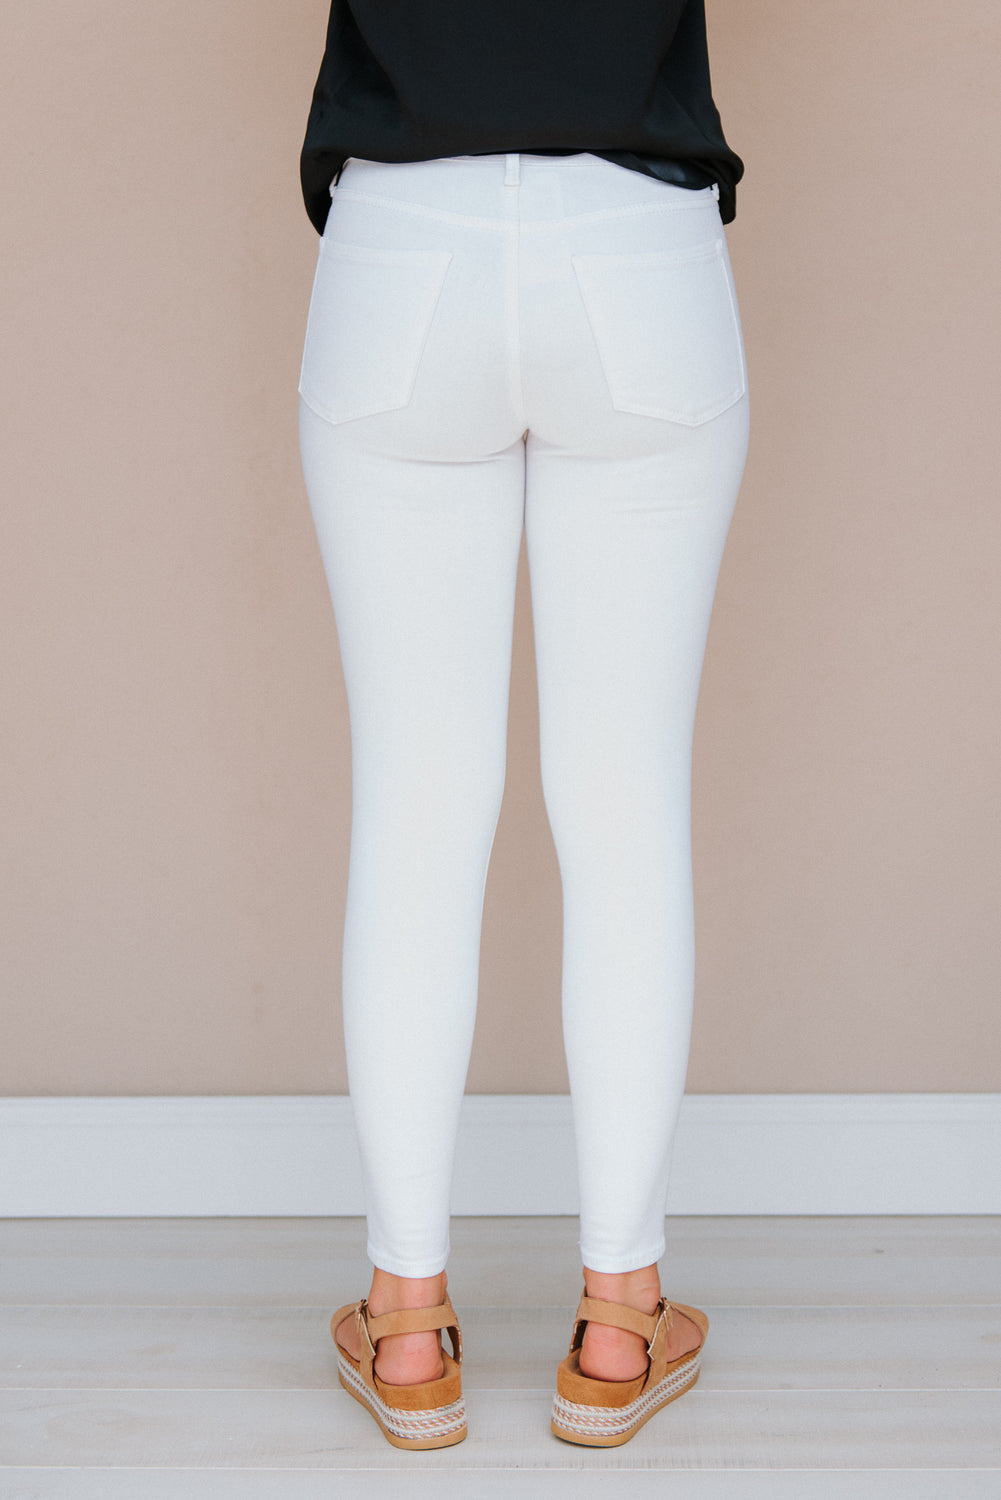 Got Milk Skinny Jeans - J. Lilly's Boutique